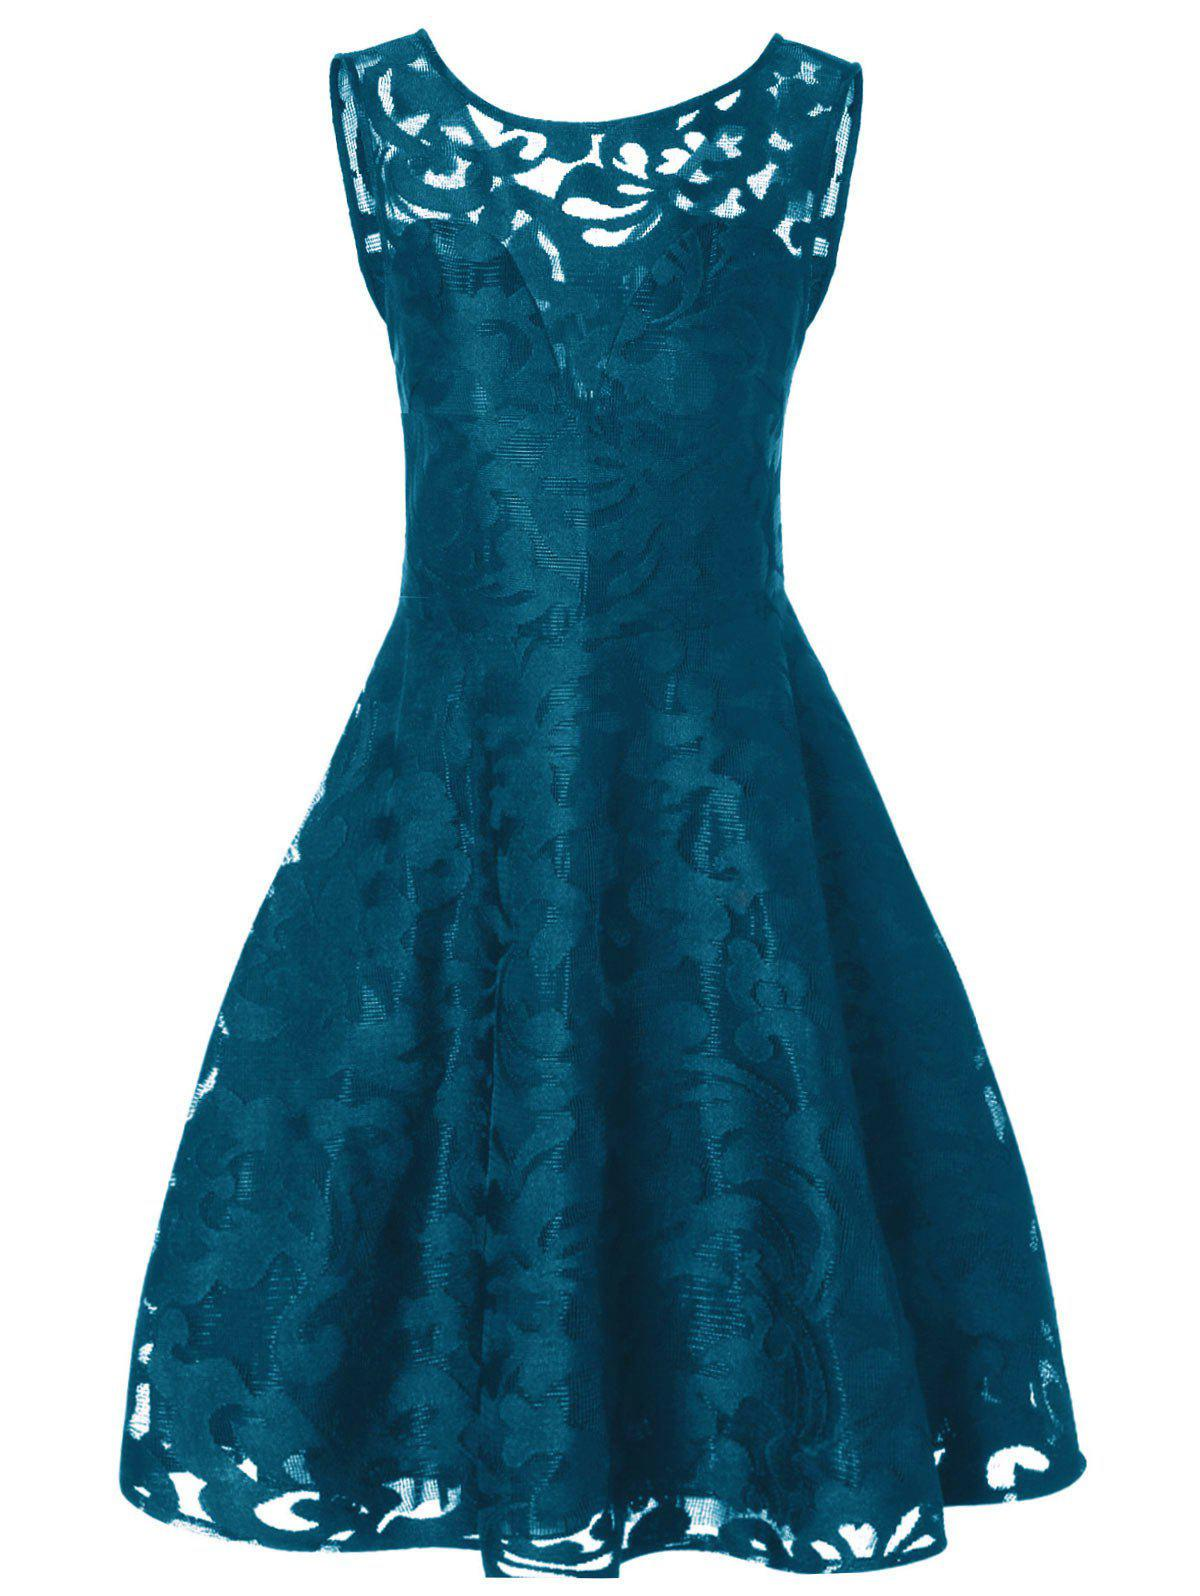 Lace Plus Size Holiday Short Cocktail DressWOMEN<br><br>Size: XL; Color: PEACOCK BLUE; Style: Vintage; Material: Polyester; Silhouette: A-Line; Dresses Length: Mid-Calf; Neckline: Round Collar; Sleeve Length: Sleeveless; Pattern Type: Solid; With Belt: No; Season: Fall; Weight: 0.2570kg; Package Contents: 1 x Dress;